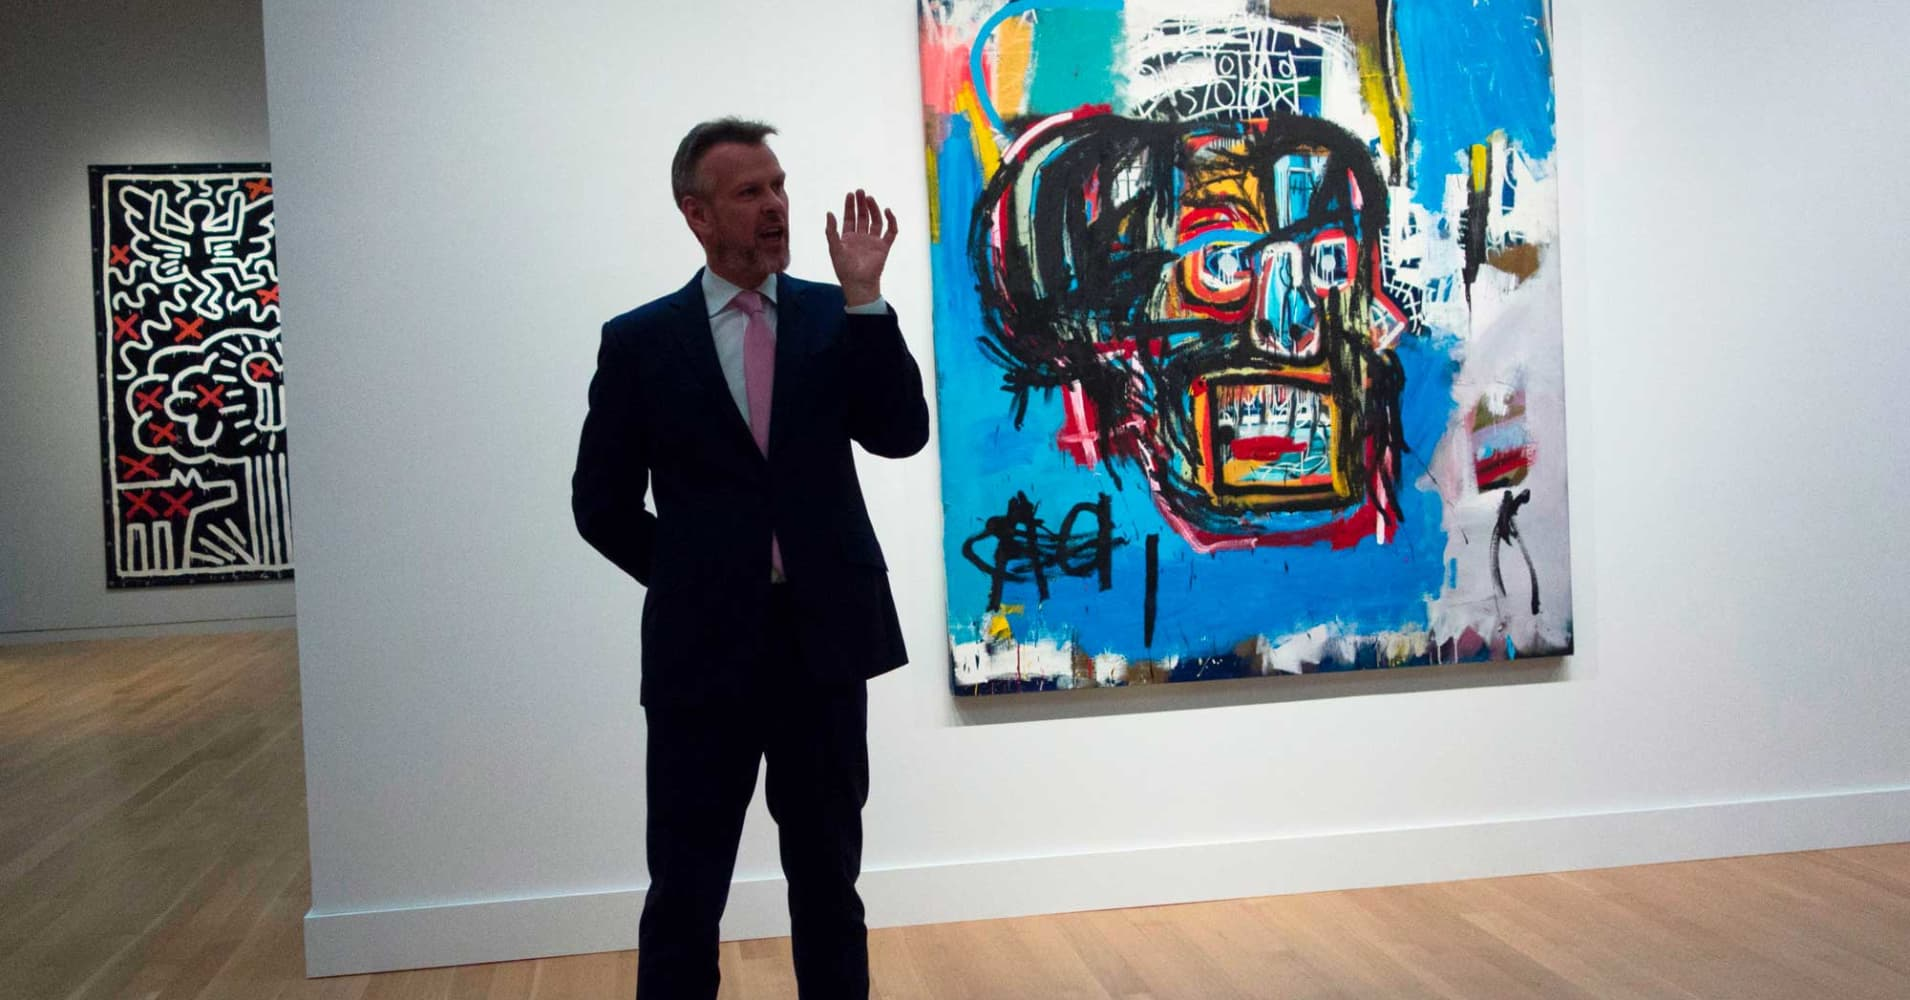 $1 billion art week could mark recovery